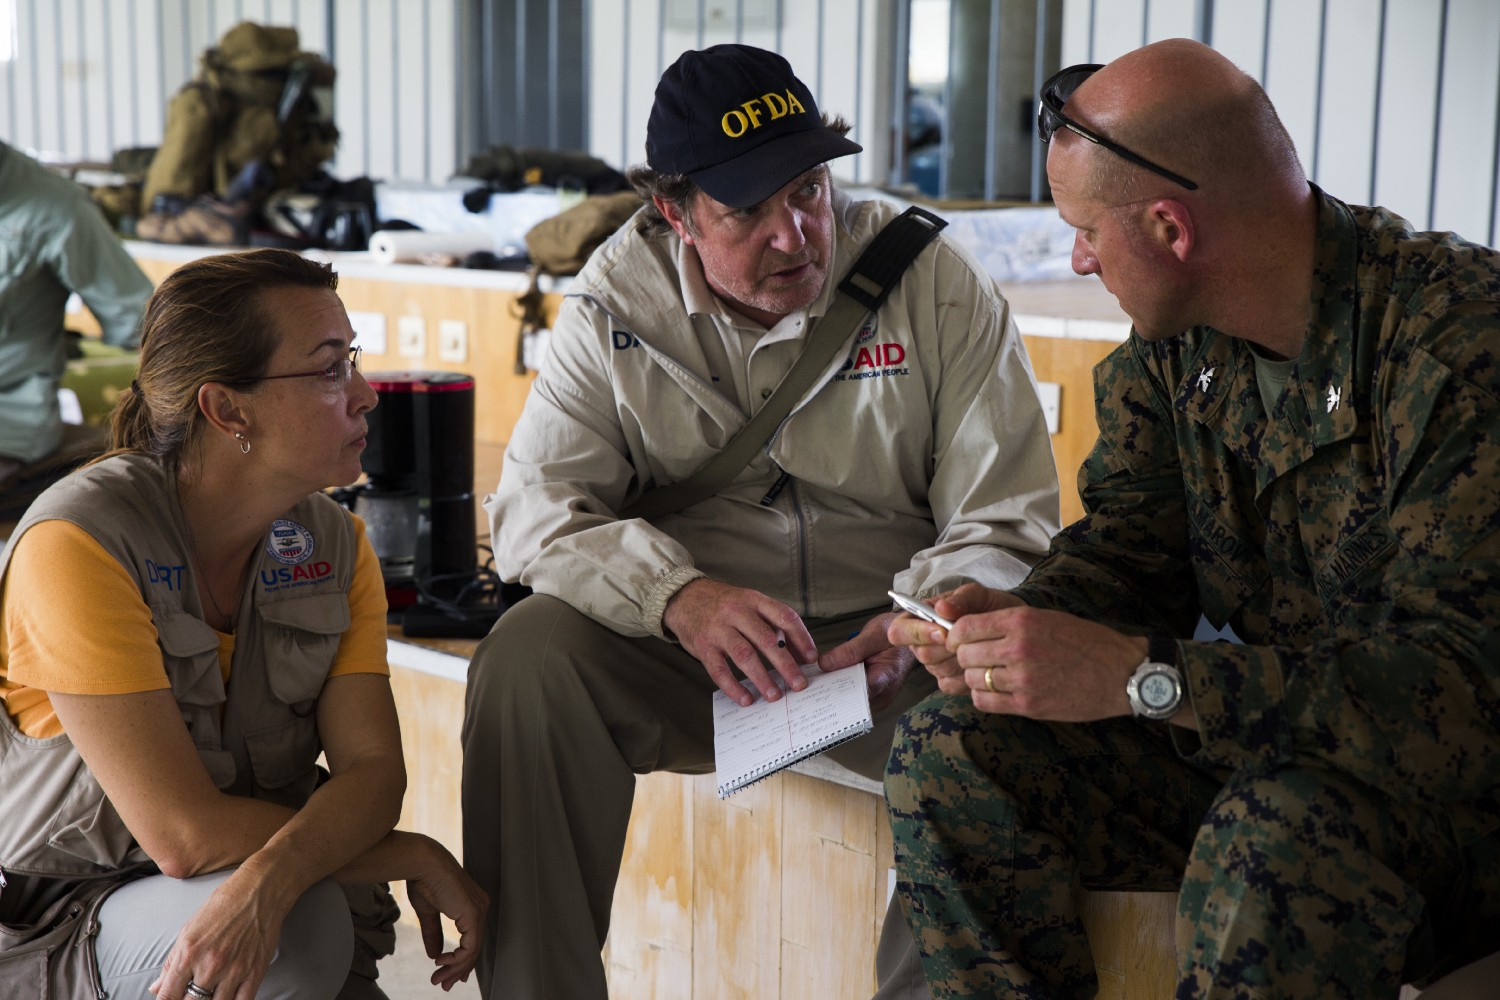 USAID DART Leader Tim Callaghan (center) discusses ongoing response efforts with U.S. Marine Col. Michael V. Samarov, commander of Joint Task Force — Leeward Islands (right), in Roseau, Dominica on Sept. 30, 2017. At the request of USAID, the U.S. military deployed aircraft and service members to assist in delivering relief supplies to Dominica in the aftermath of Hurricane Maria. Photo credit: Sgt. Melissa Martens, U.S. Marine Corps